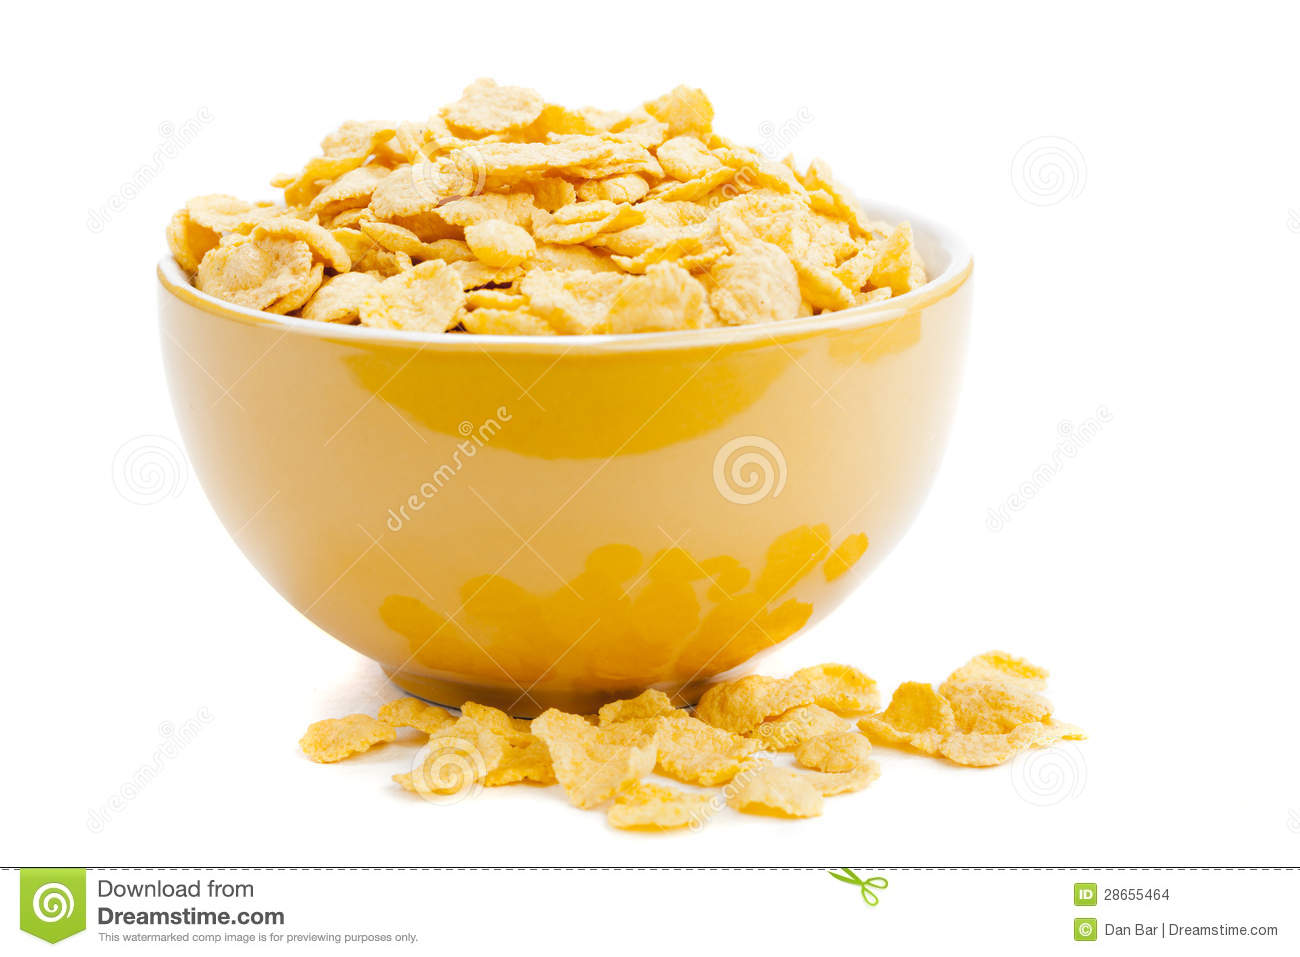 Cereal cornflakes in a bowl